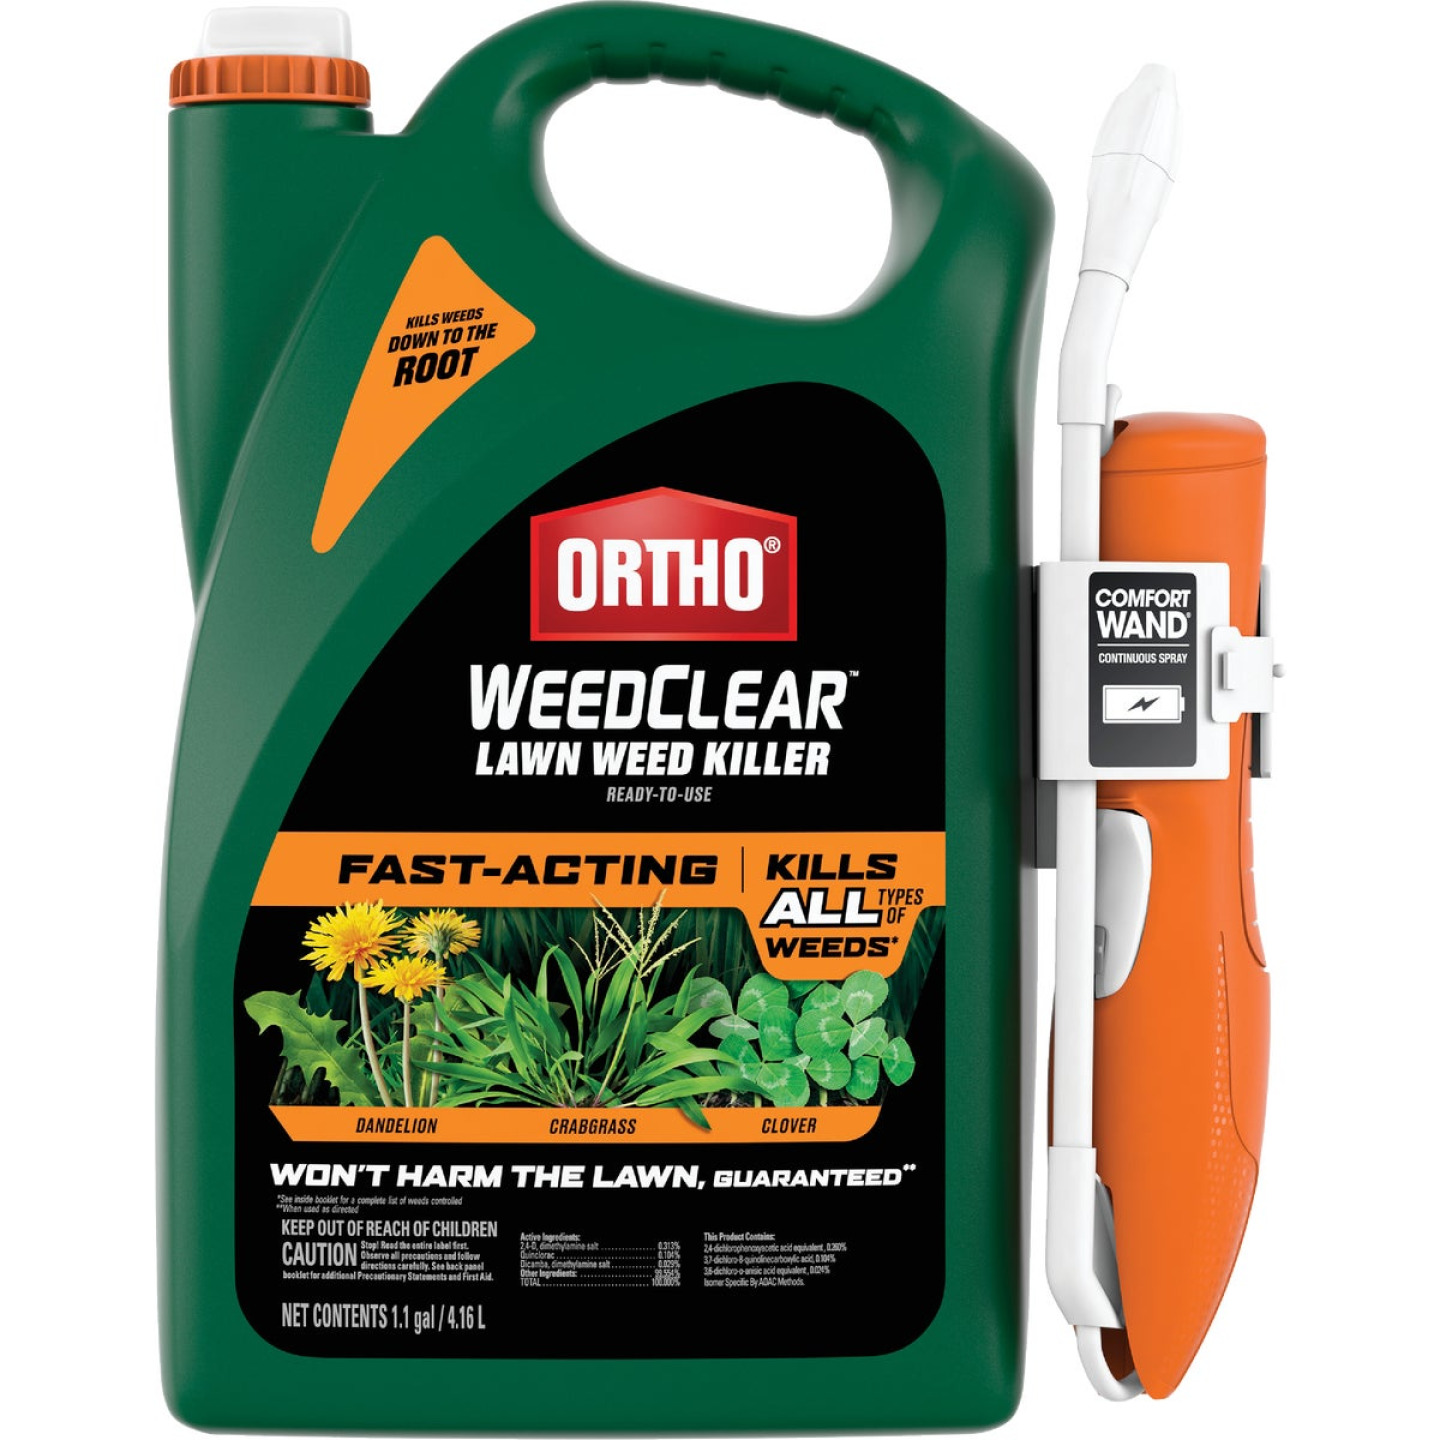 Ortho WeedClear 1.1 Gal. Ready To Use Wand Sprayer Northern Lawn Weed Killer Image 1